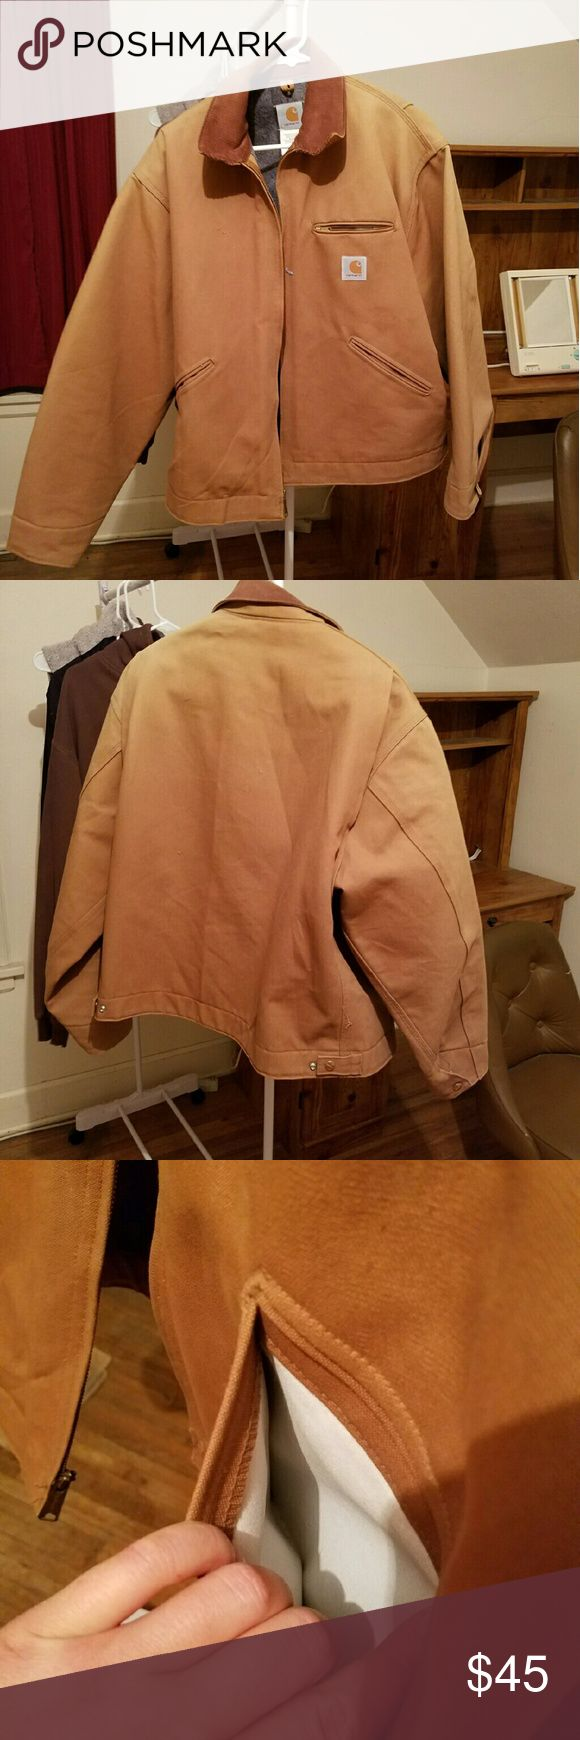 Carhartt Winter Jacket Very lightly worn men's Carhart Jacket Carhartt Jackets & Coats Performance Jackets